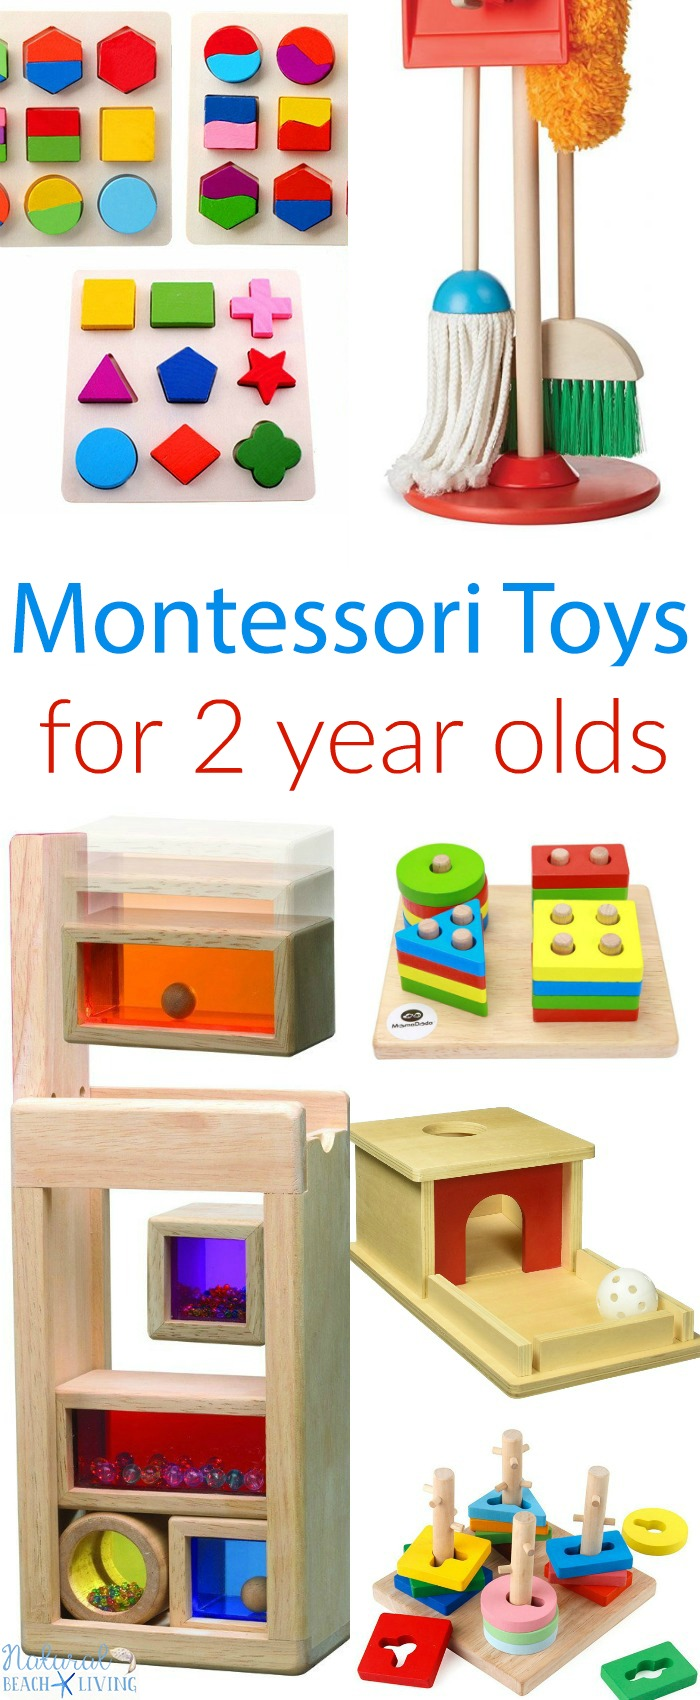 The Ultimate Guide for Best Montessori Toys 2 Year Olds